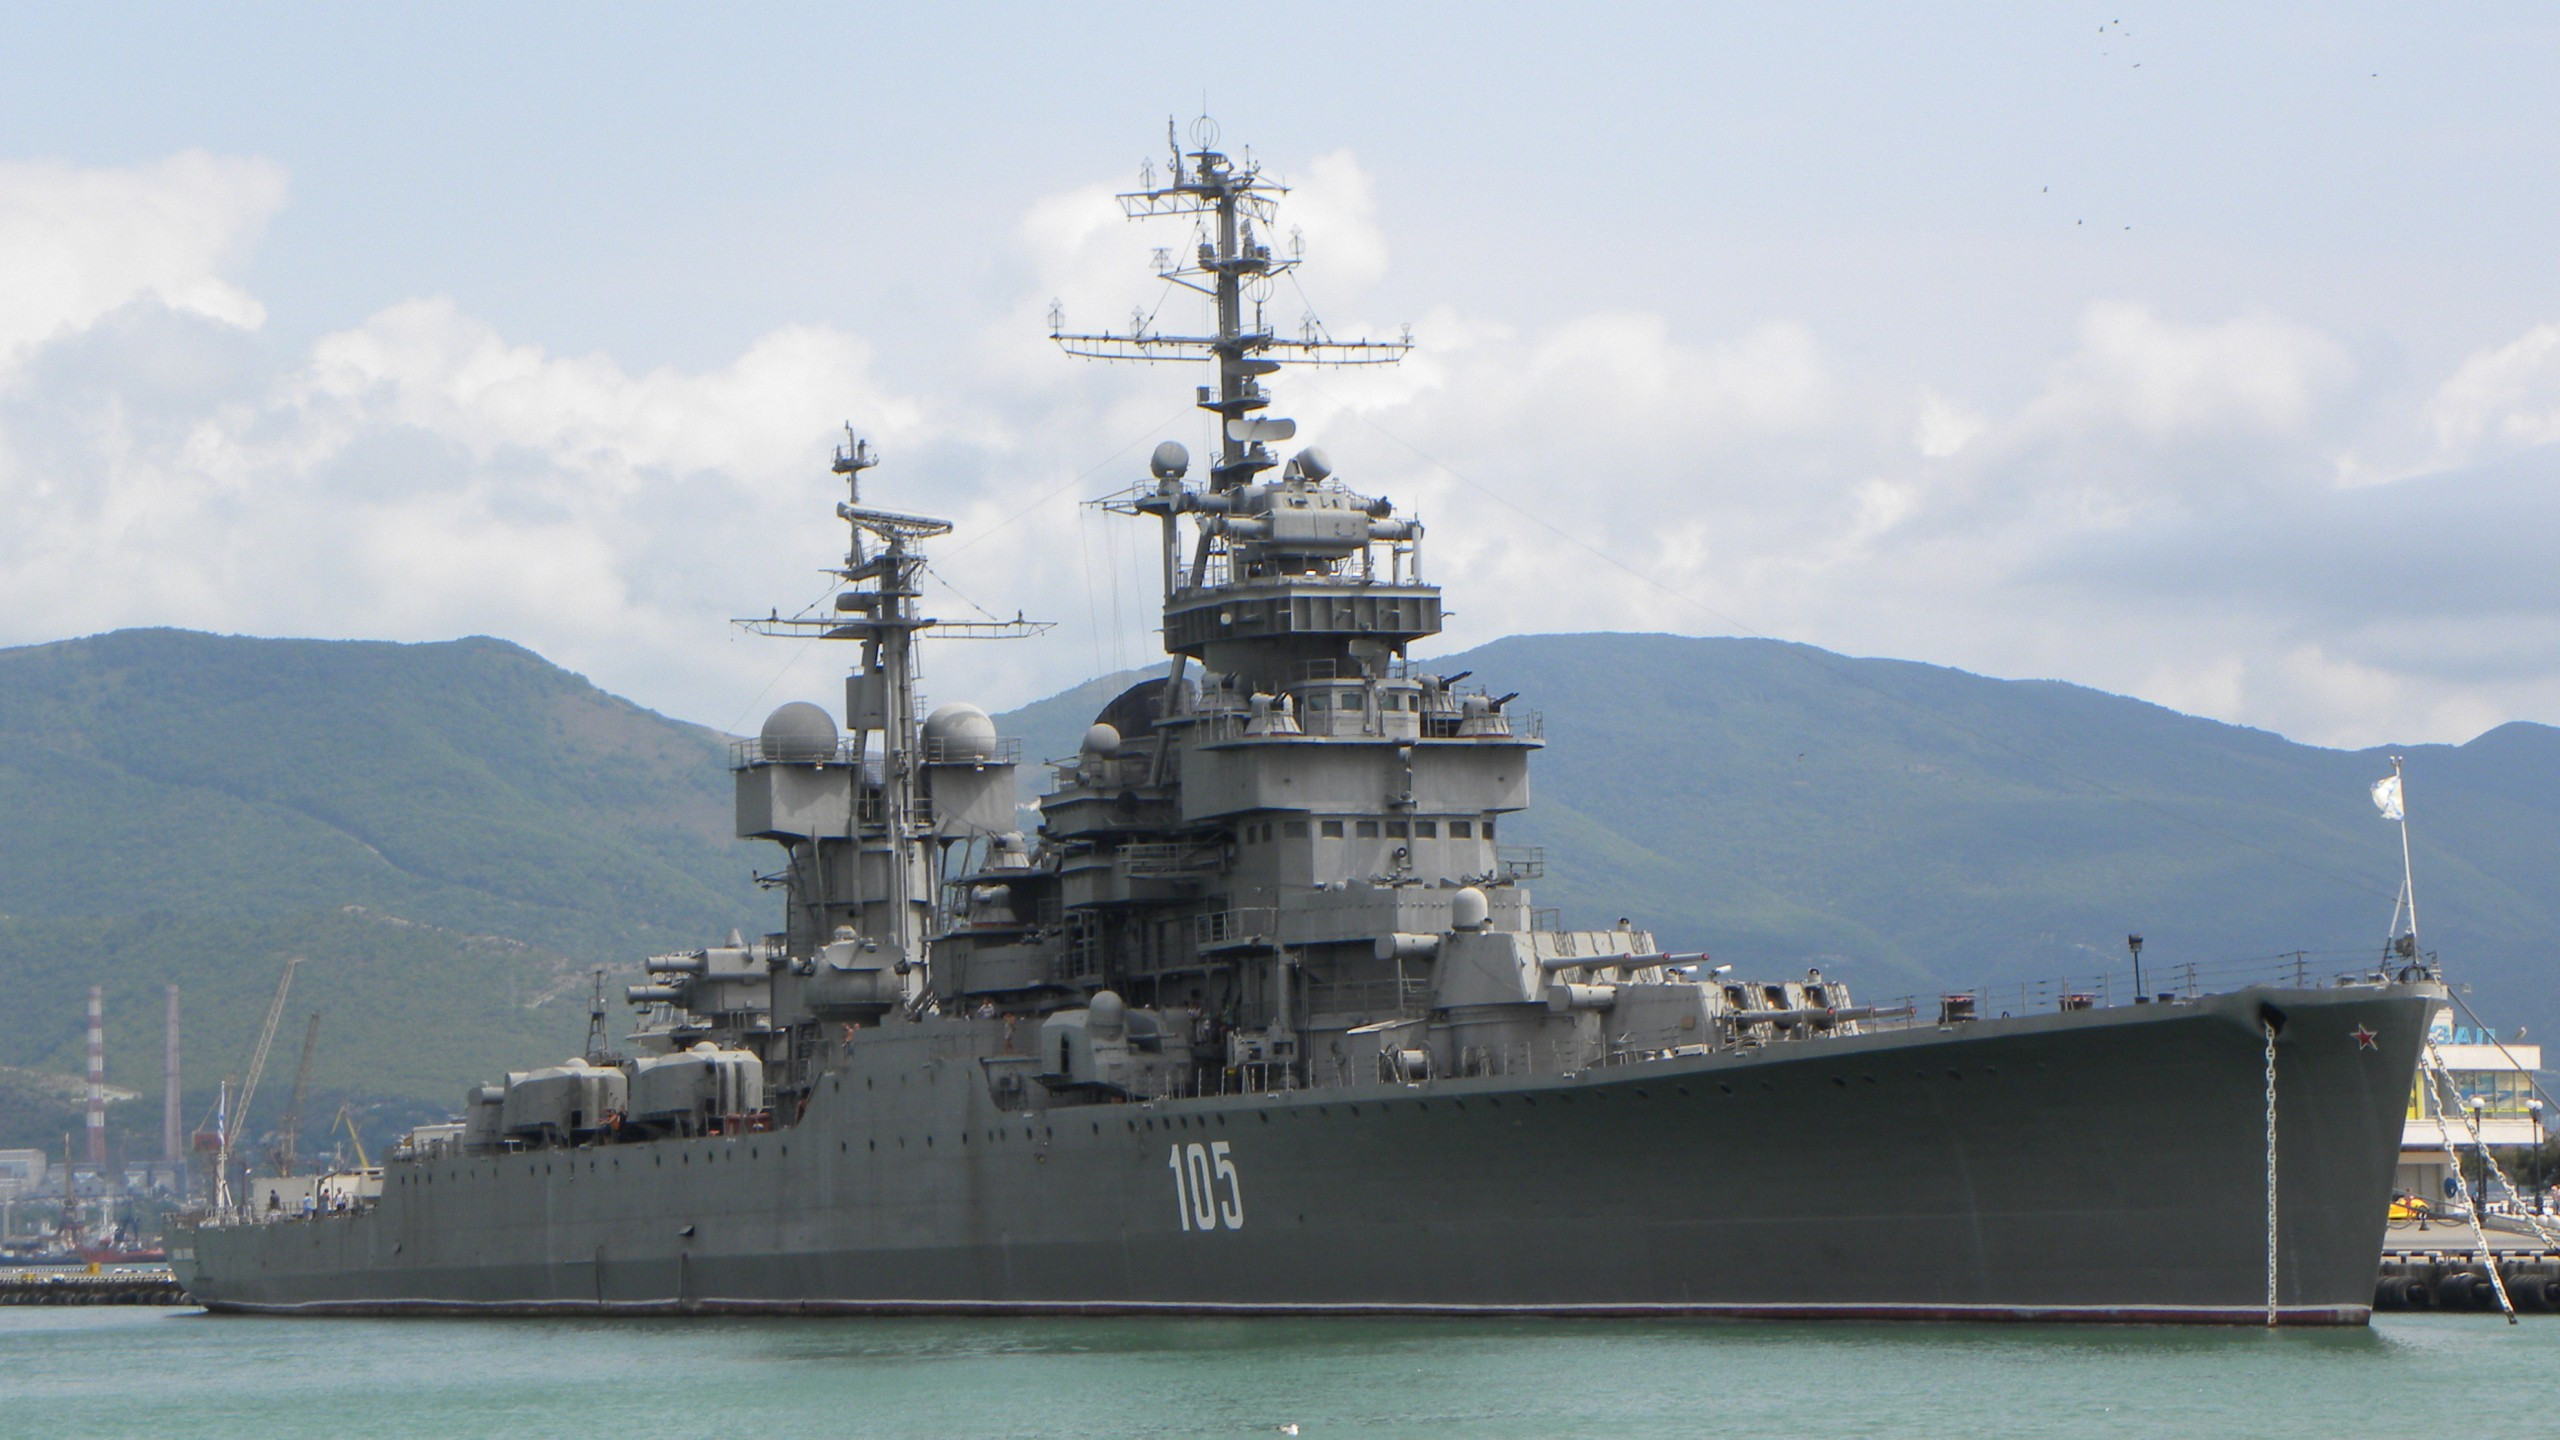 Navy Wallpaper Military Pictures: Ships Ship Boat Military Navy B Wallpaper